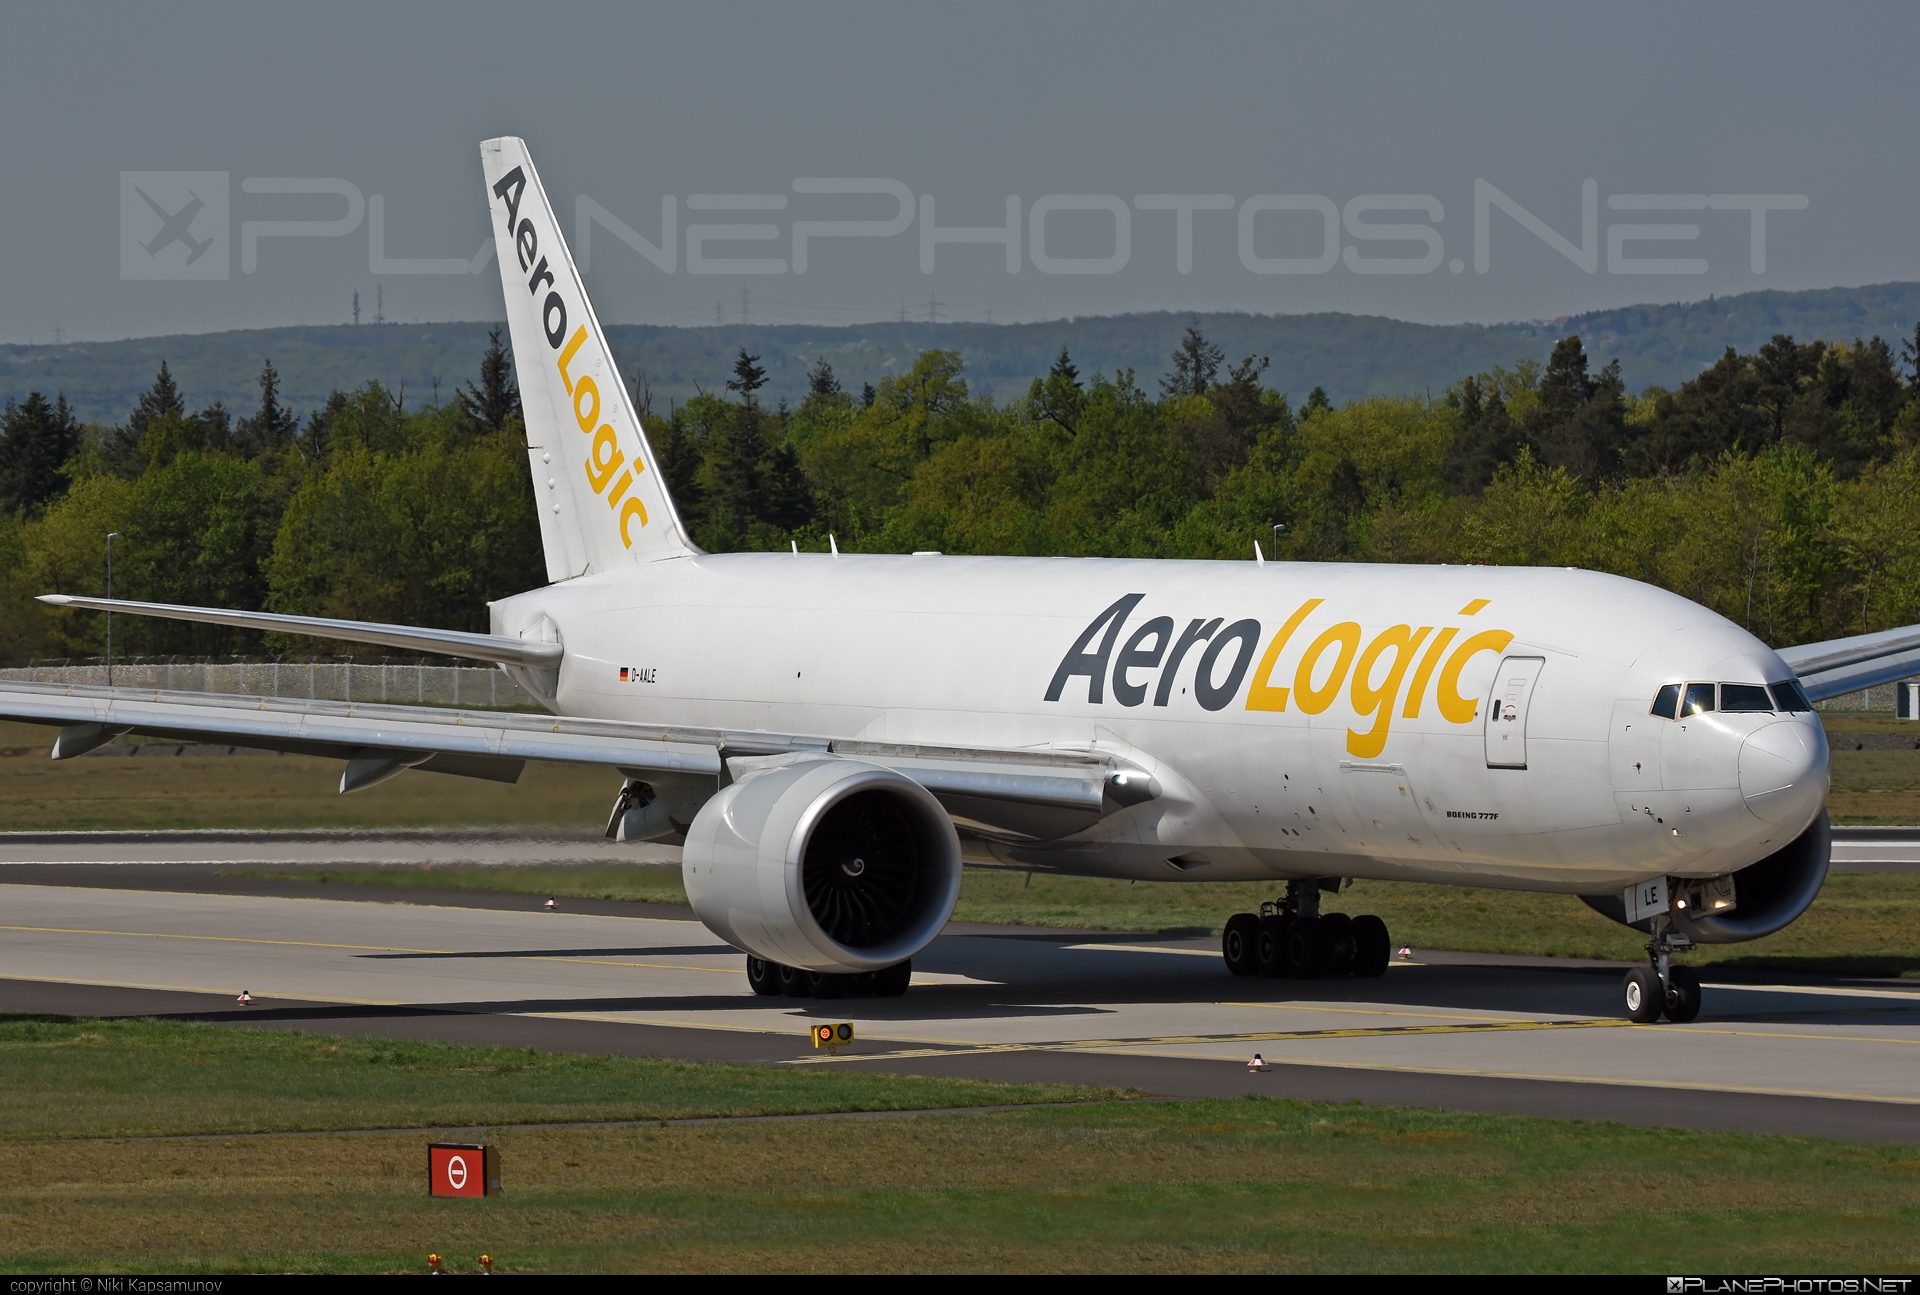 Boeing 777F - D-AALE operated by AeroLogic #aerologic #b777 #b777f #b777freighter #boeing #boeing777 #tripleseven